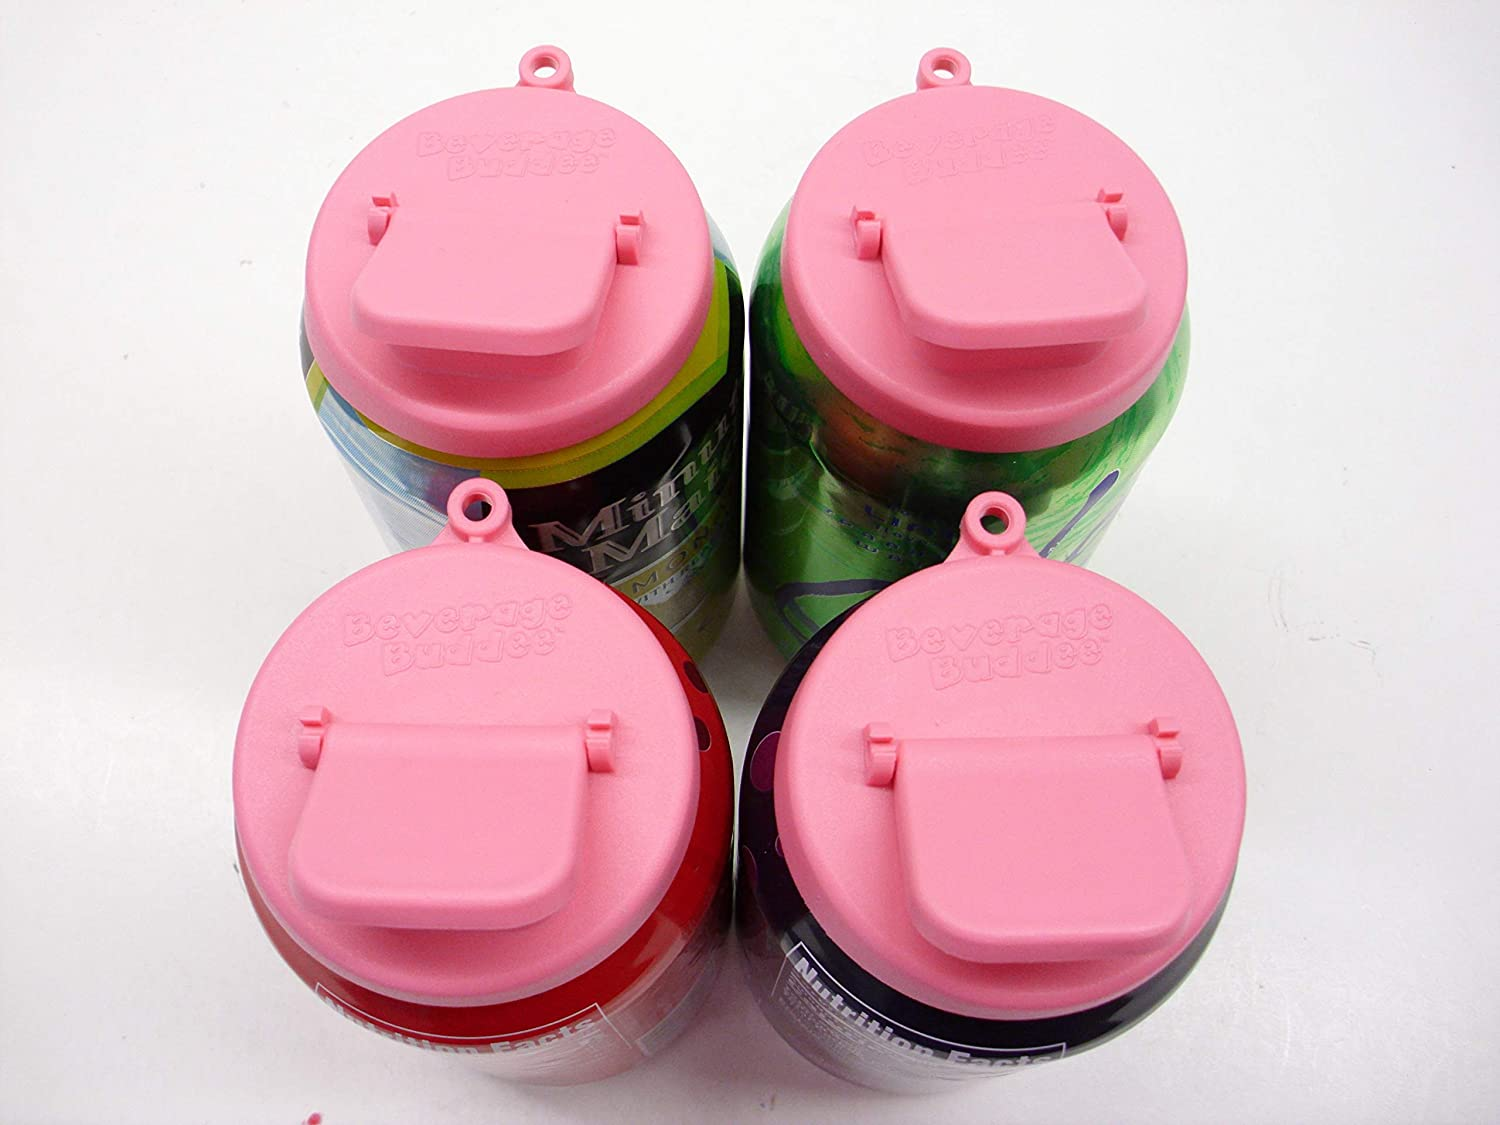 Beverage Buddee Can Cover - Best Can Cover For Standard Size Soda/Beer/Energy Drink Cans - Made In The USA - BPA-PCB Free - 4 pack (Pink)